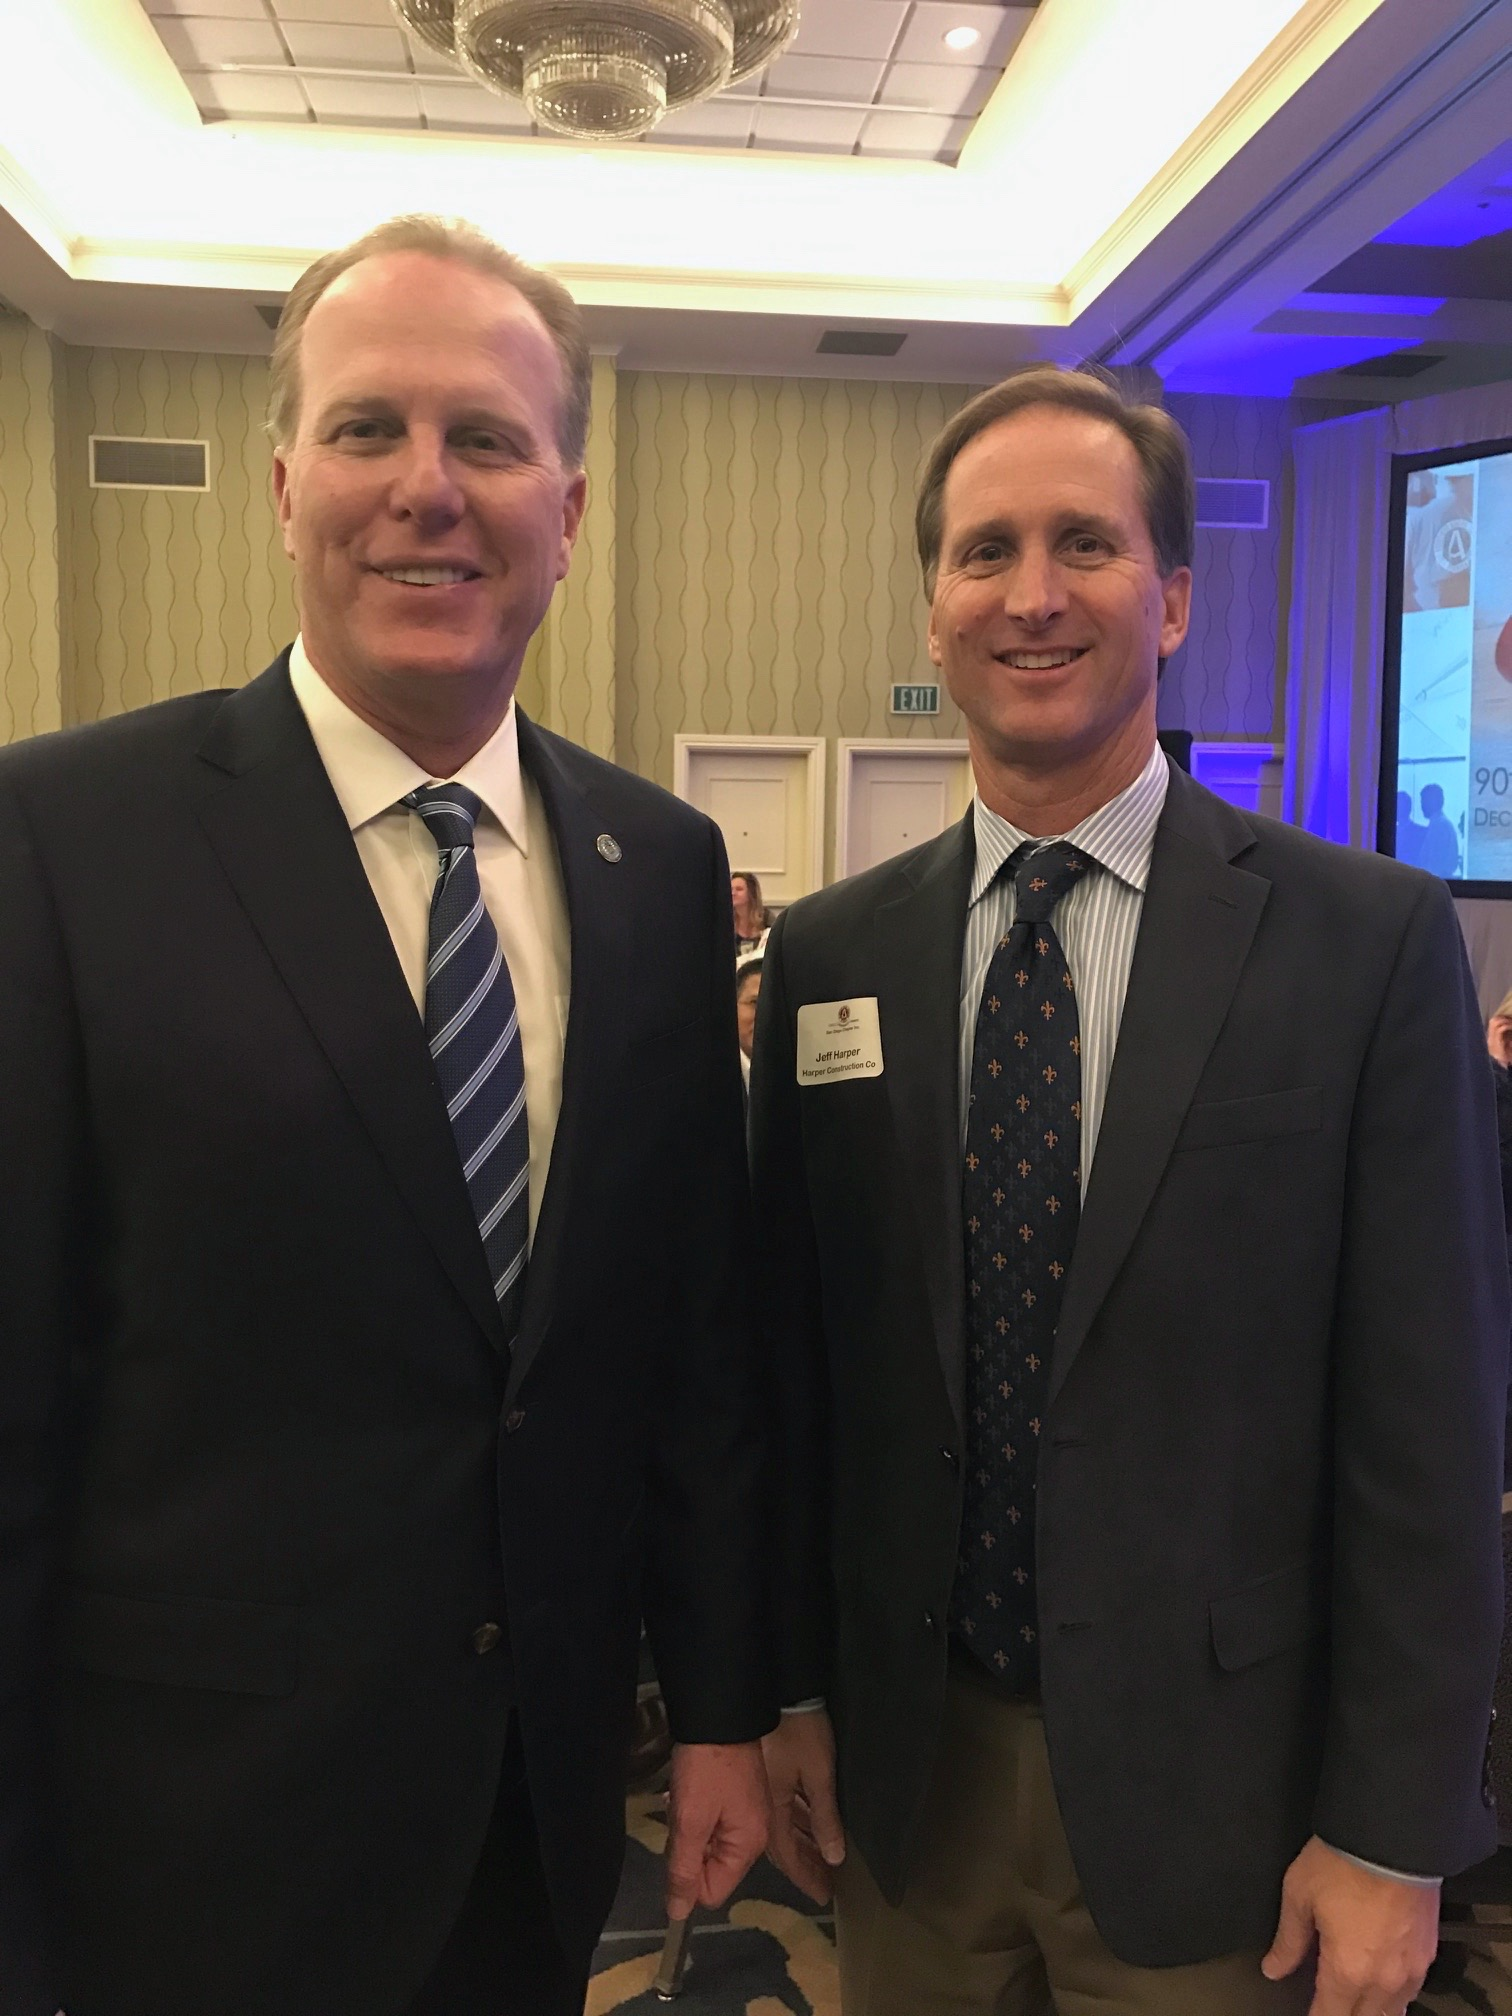 Jeff Harper with San Diego Mayor, Kevin Faulconer